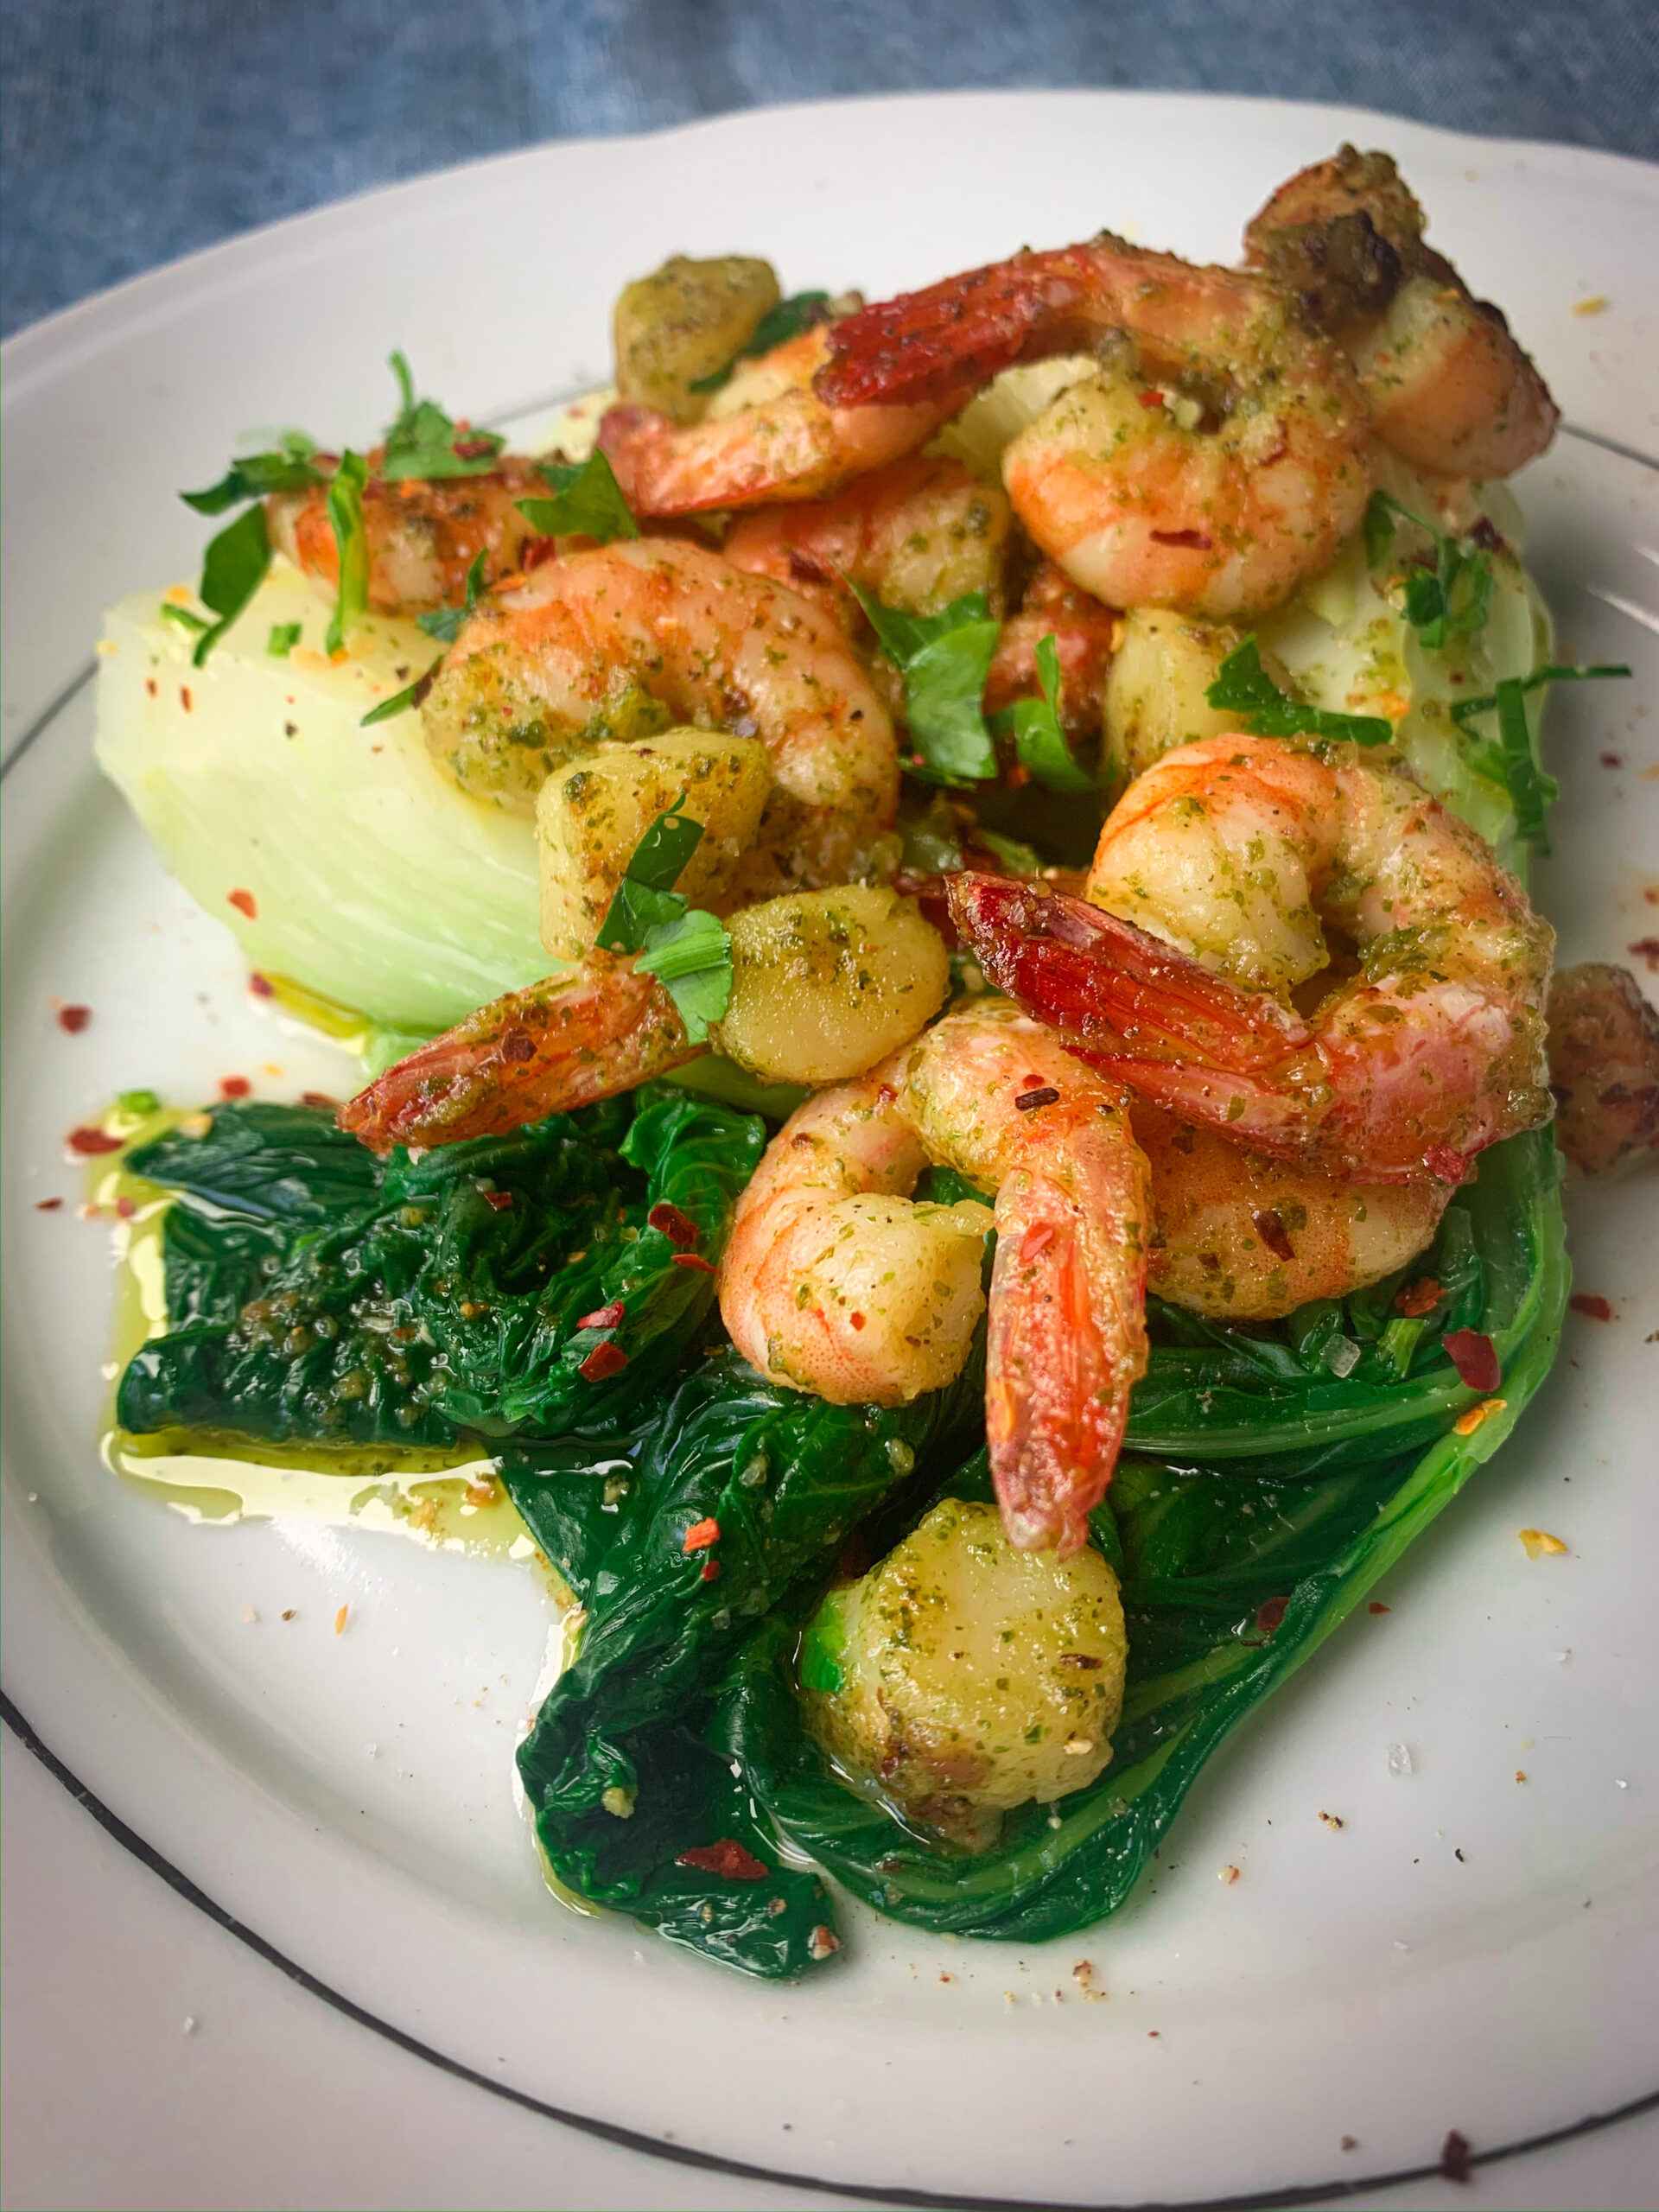 Picture of a plate full of bok choy with sauteed shrimps and scallops and chilli